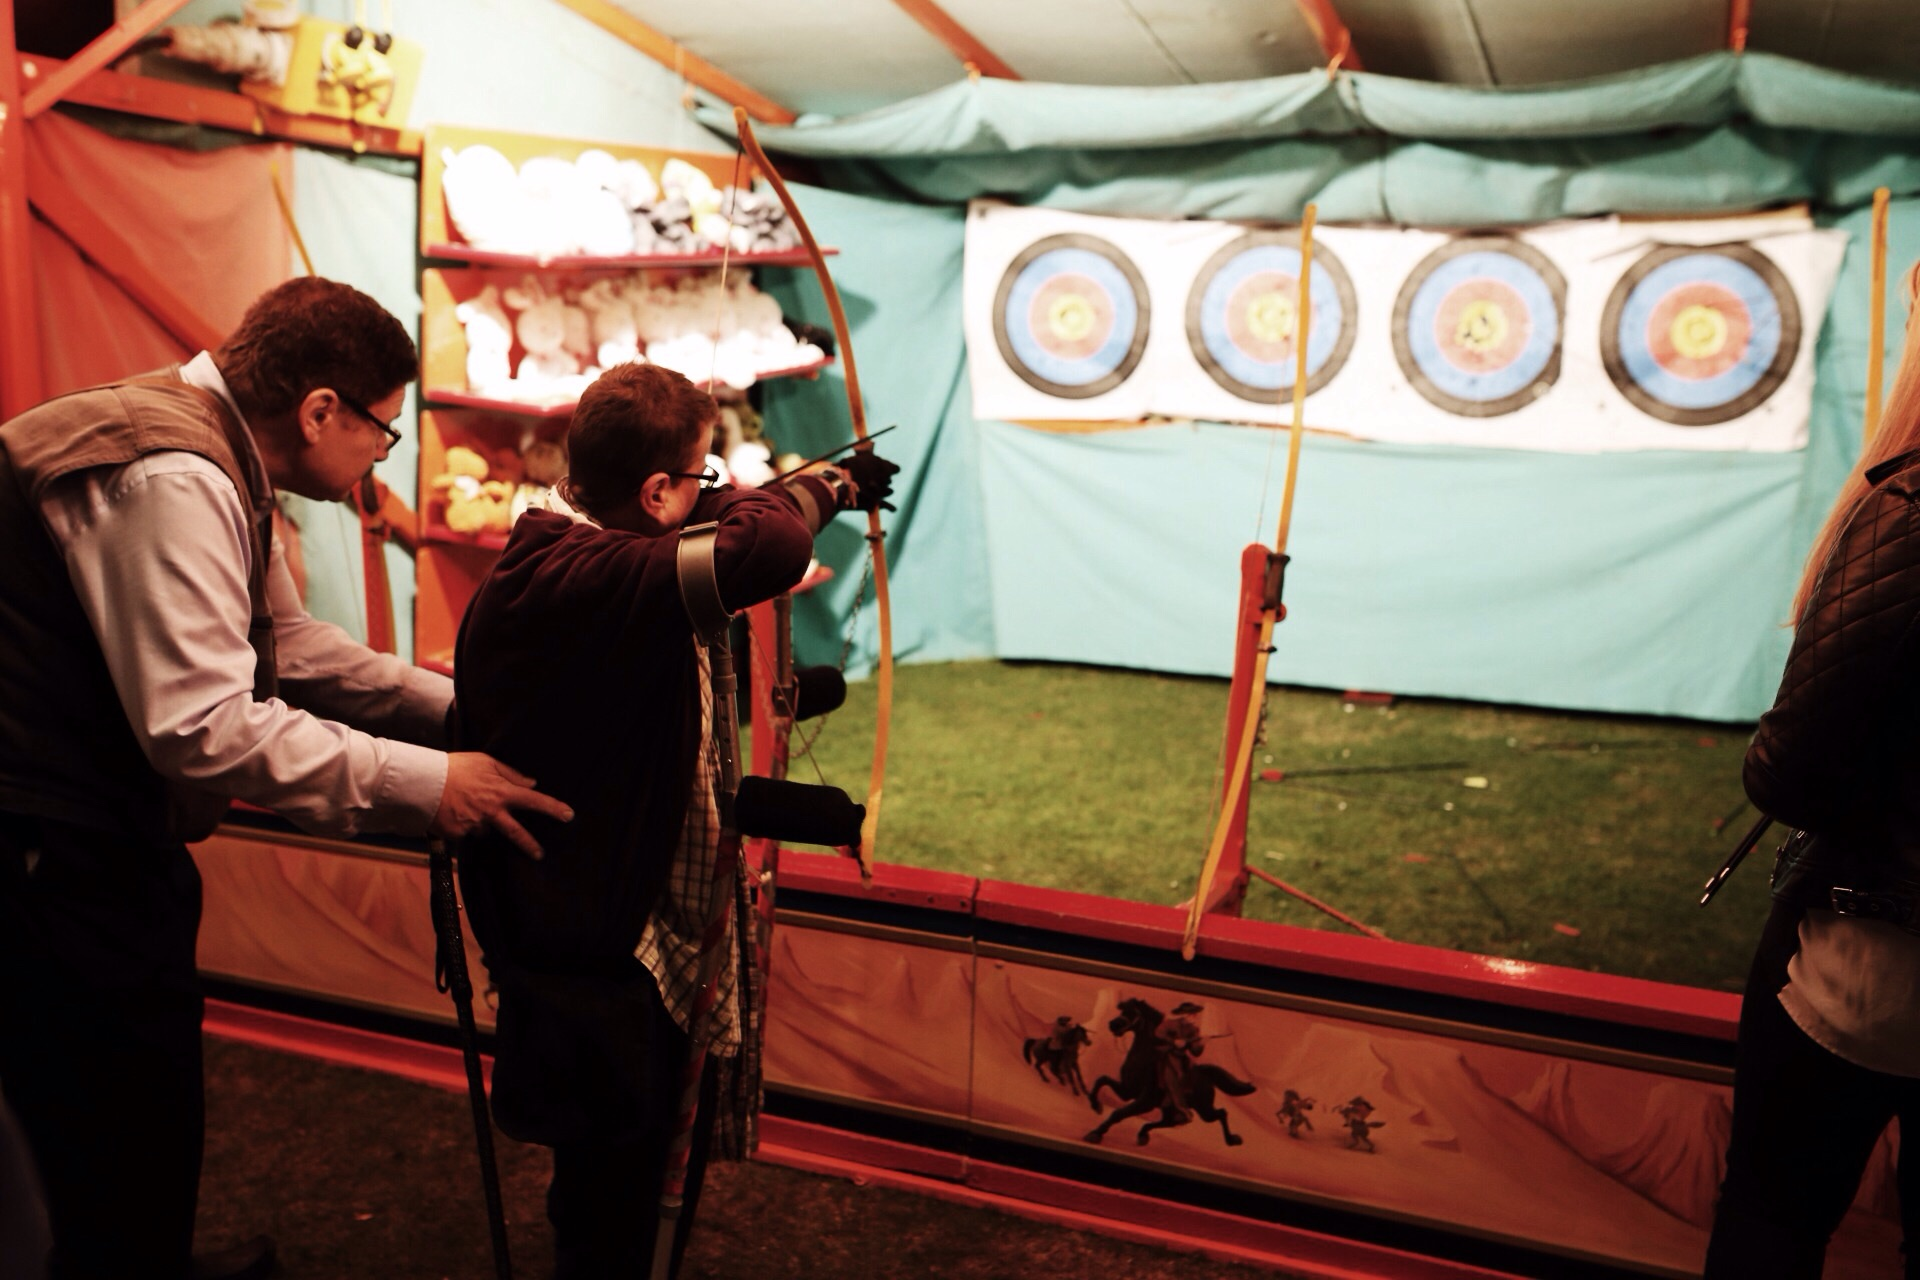 Steam Faire: caught this cute moment of this elderly man helping his partner stay stable as she tried to shoot an arrow at the Faire.